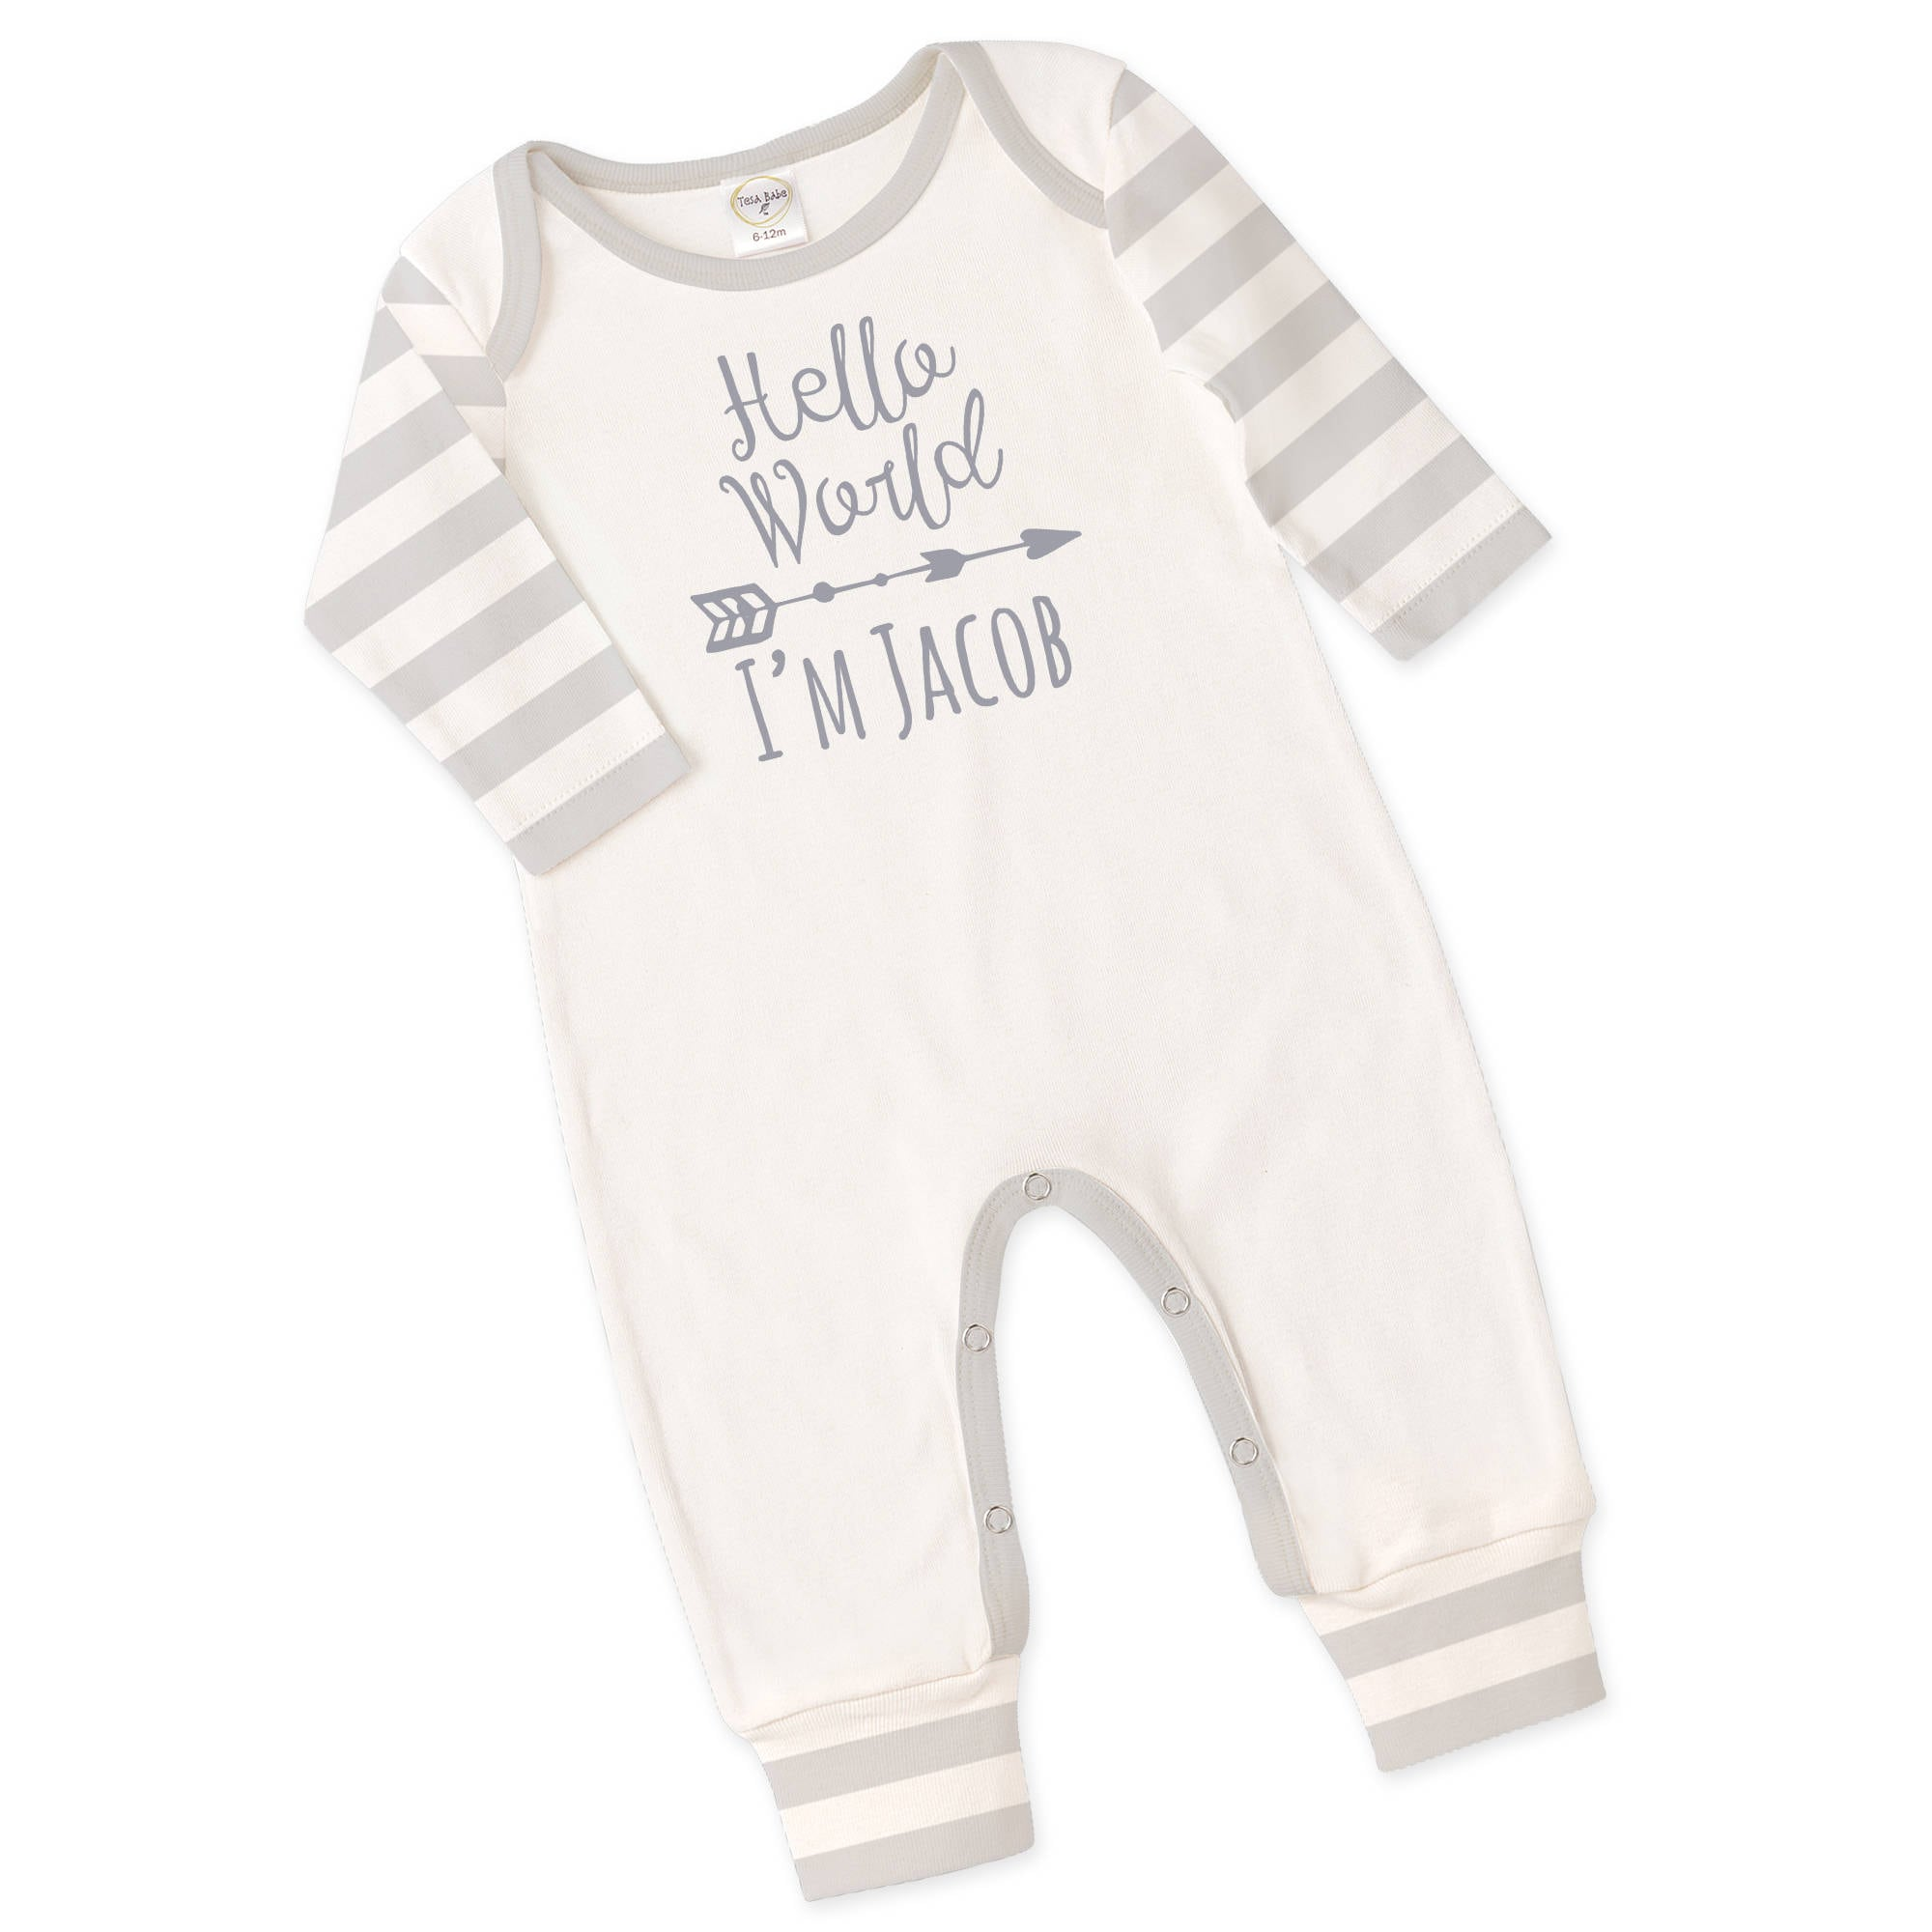 Personalized Newborn ing Home Outfit Monogrammed Newborn Outfit